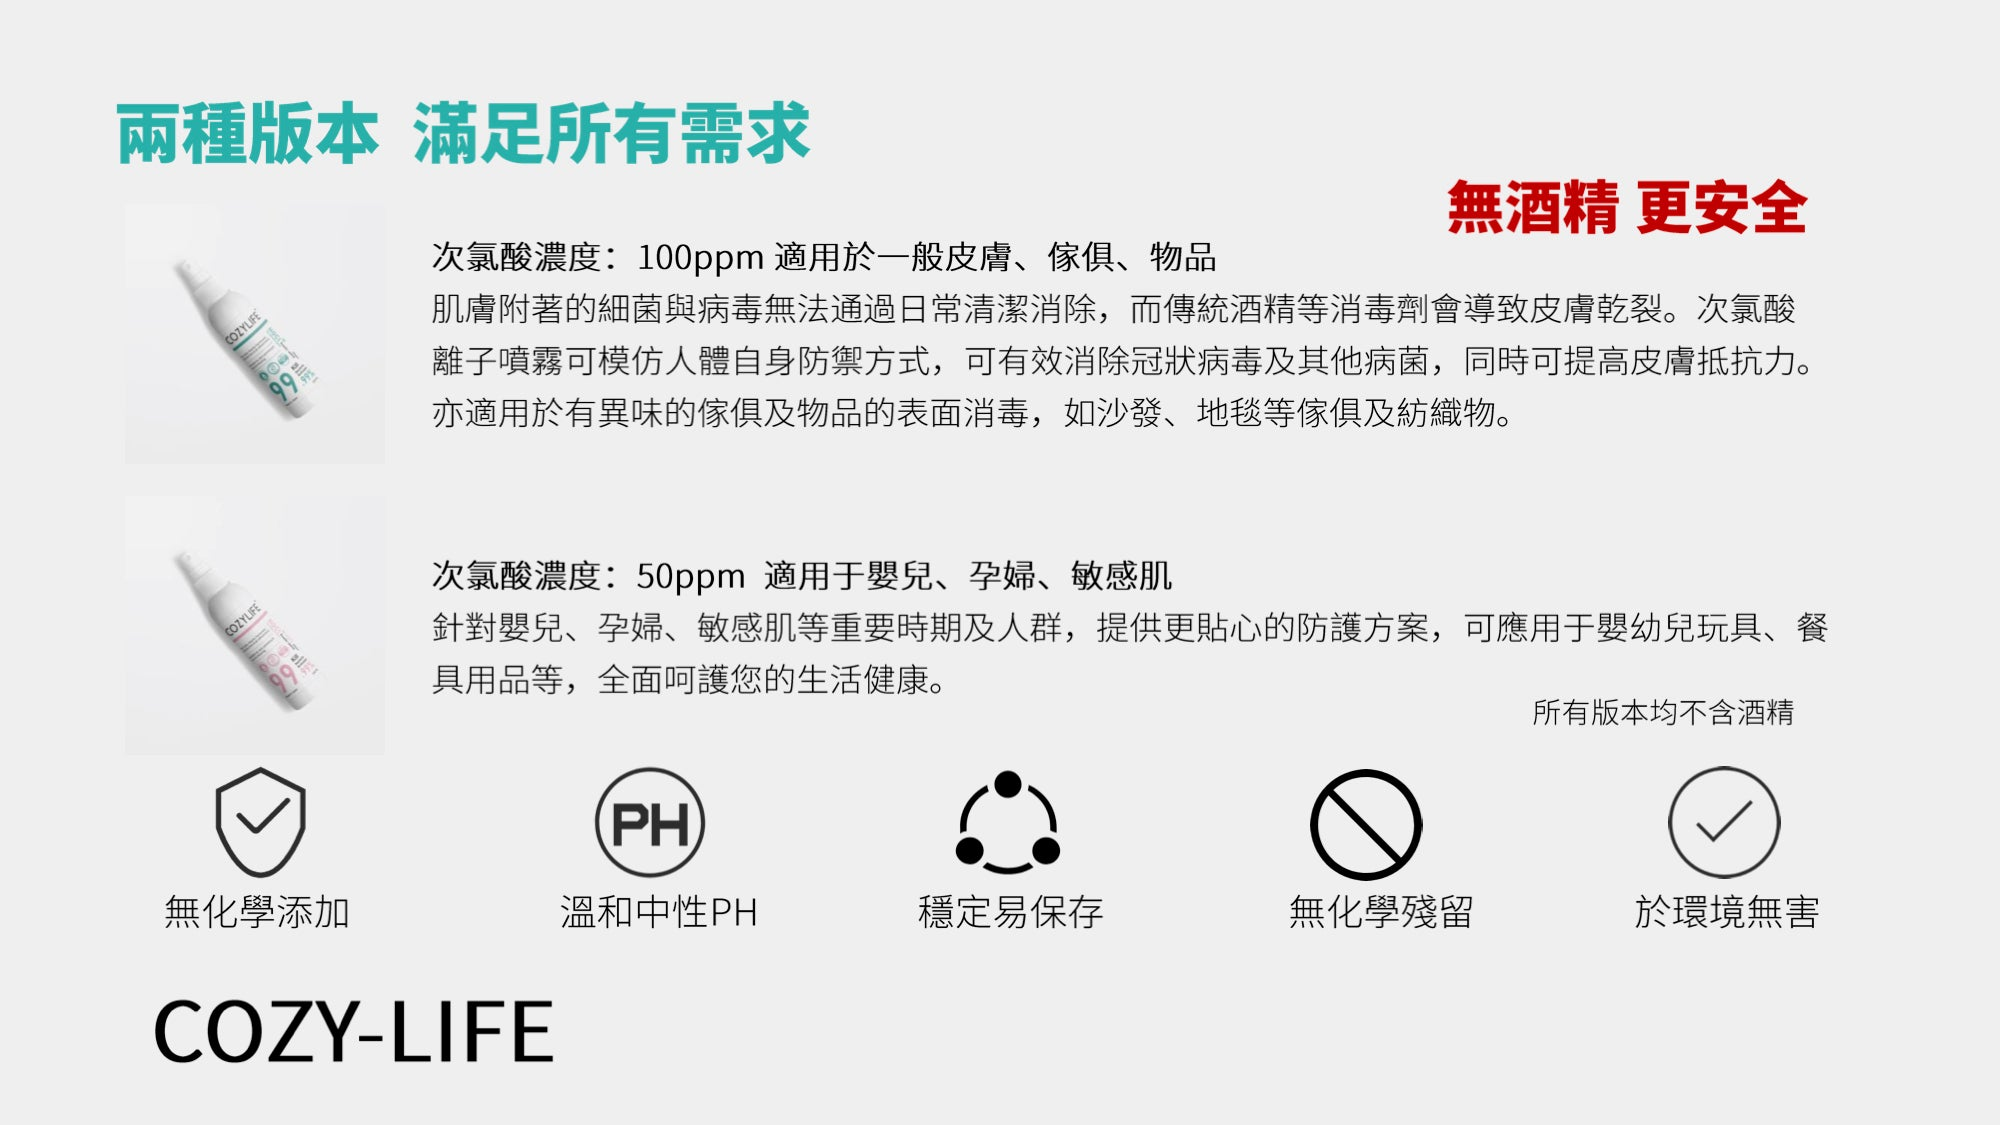 COZYLIFE 次氯酸離子噴霧